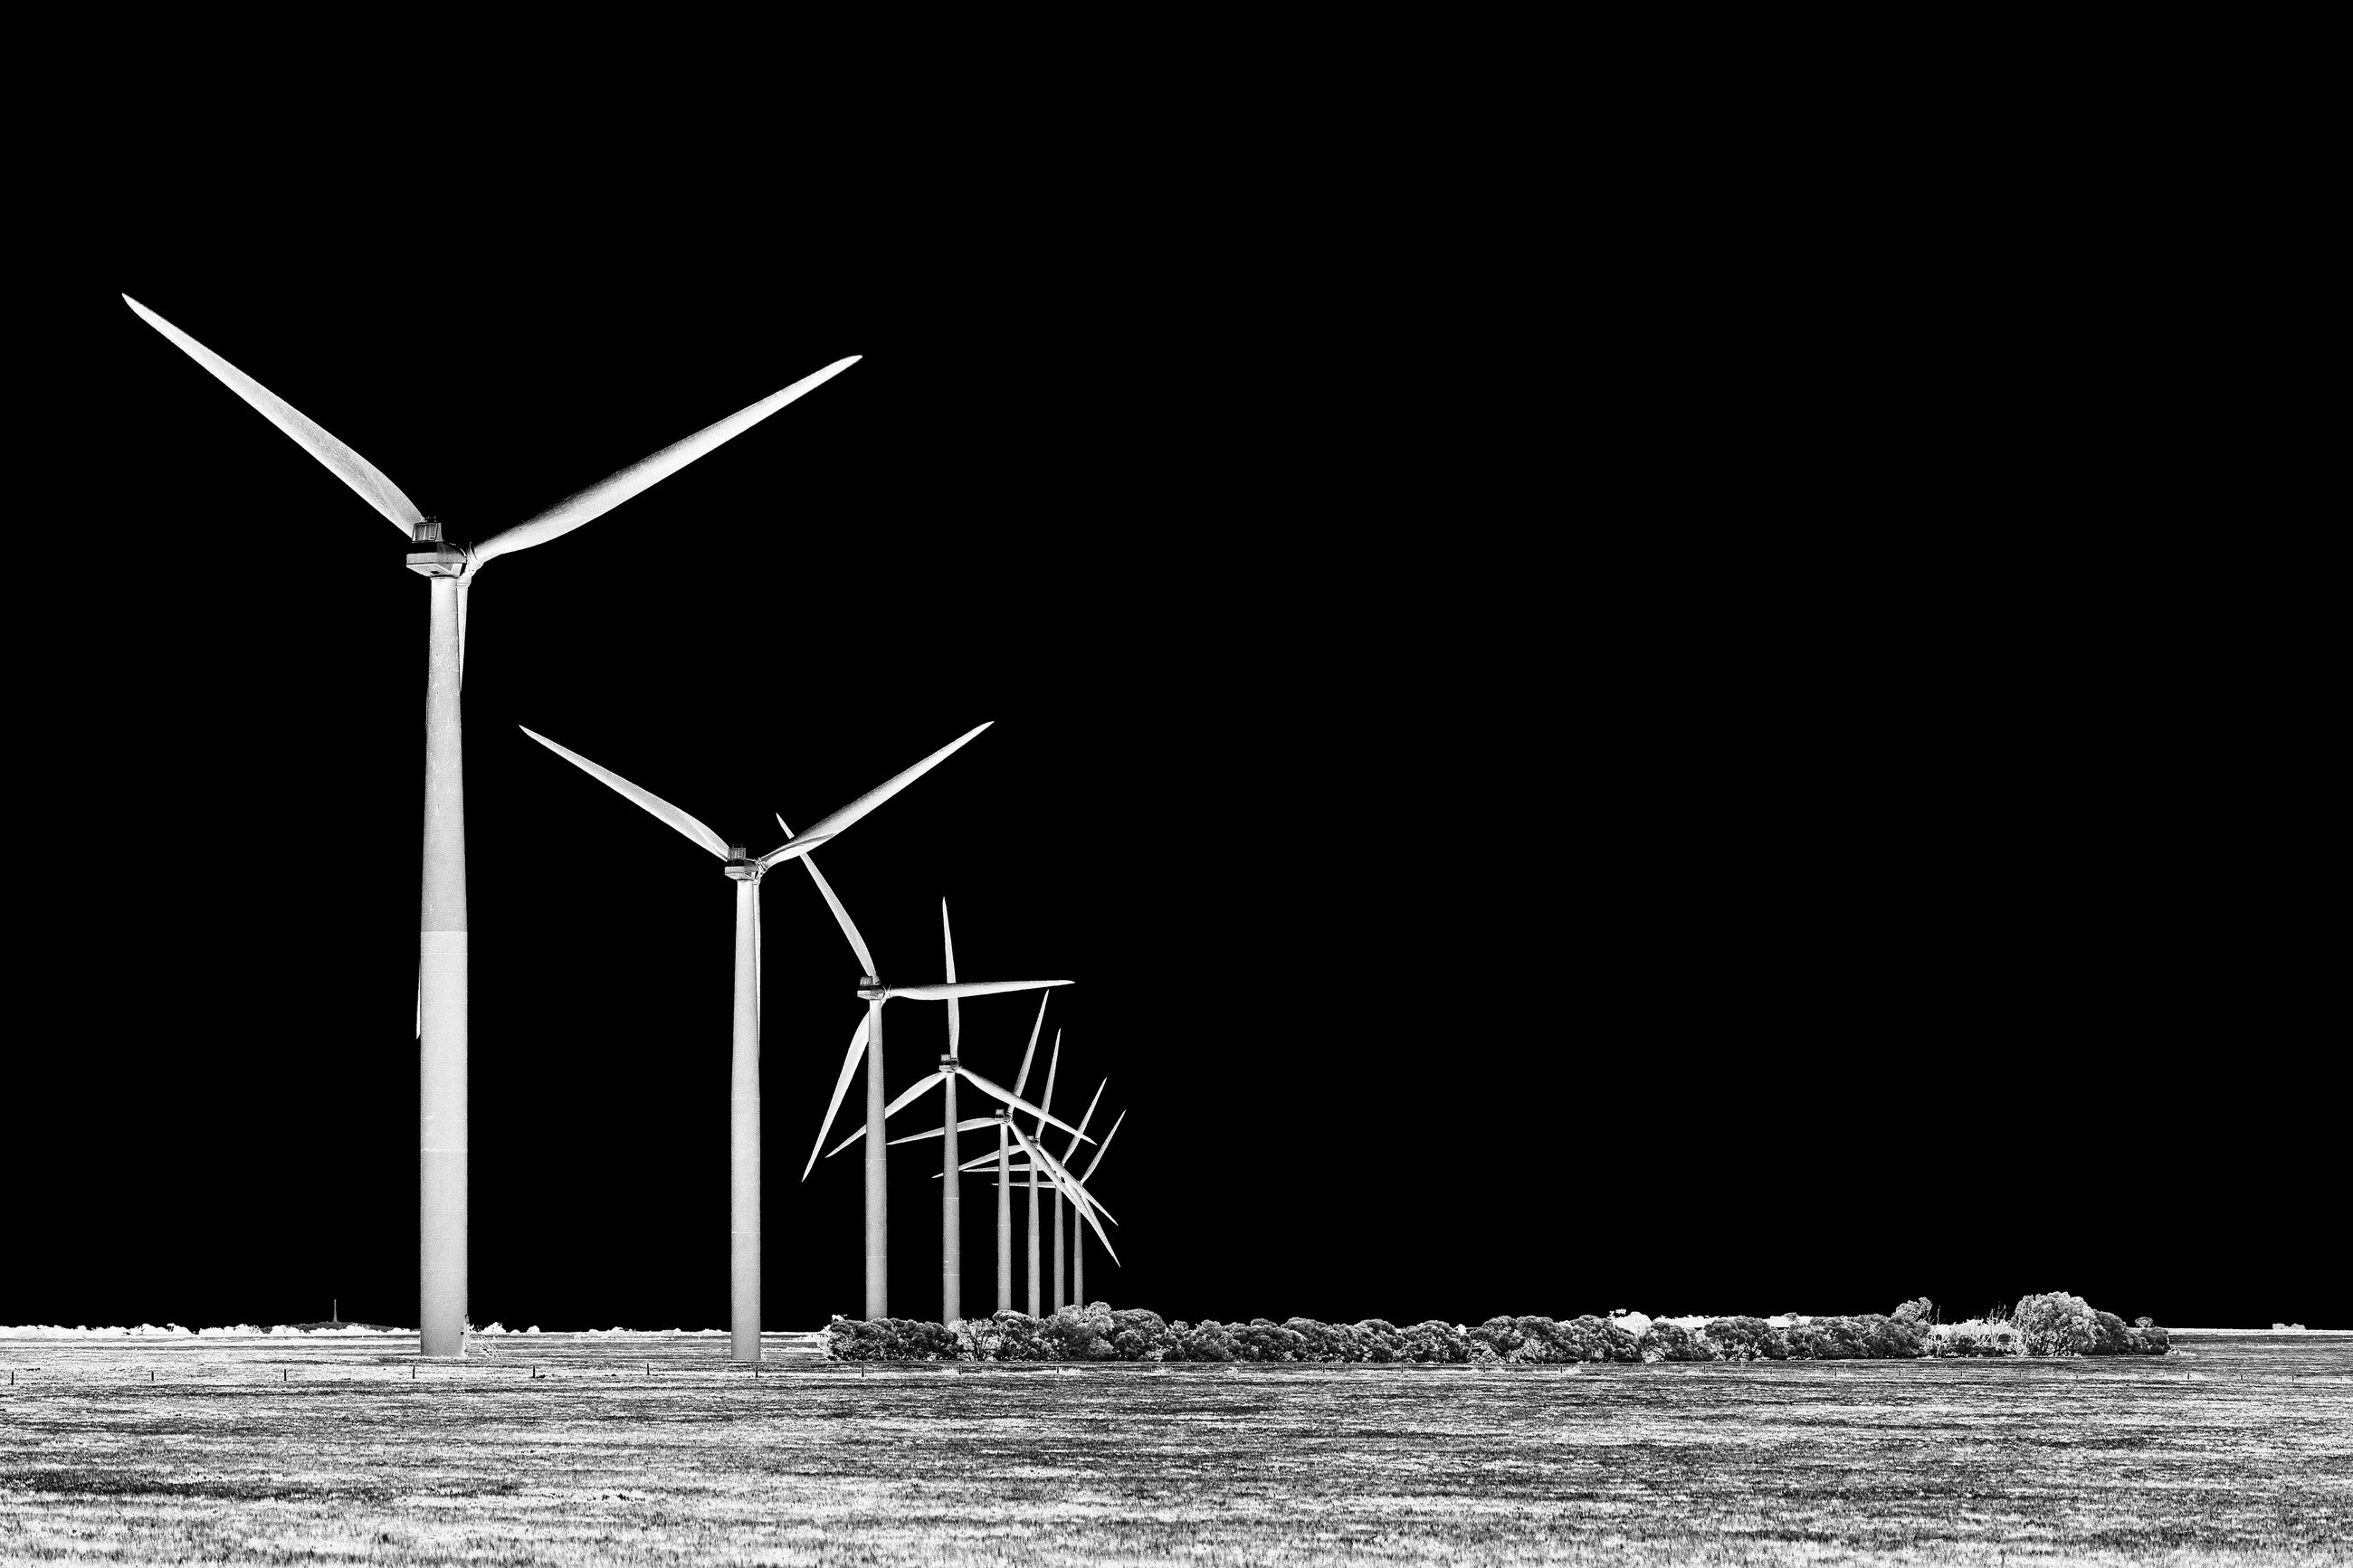 turbine, alternative energy, fuel and power generation, wind turbine, renewable energy, environment, wind power, environmental conservation, nature, sky, land, water, no people, copy space, clear sky, outdoors, motion, night, sea, power in nature